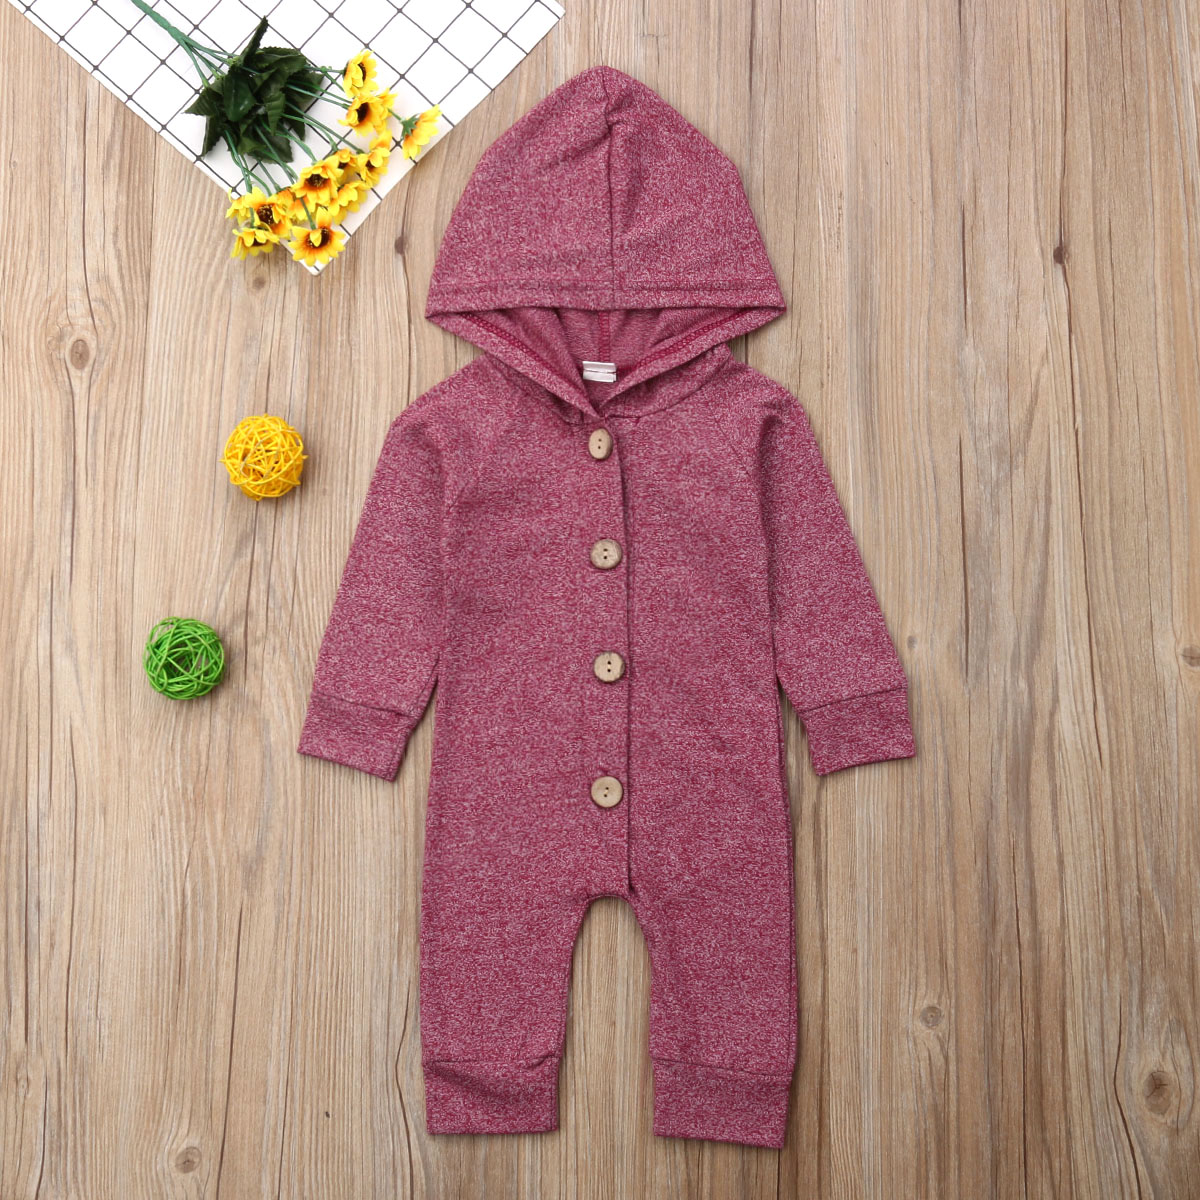 HTB1ZjQHMNTpK1RjSZR0q6zEwXXam 2019 Children Spring Autumn Clothing Baby Kids Boys Girls Infant Hooded Solid Romper Jumpsuit Long Sleeve Clothes Outfits 0-24M